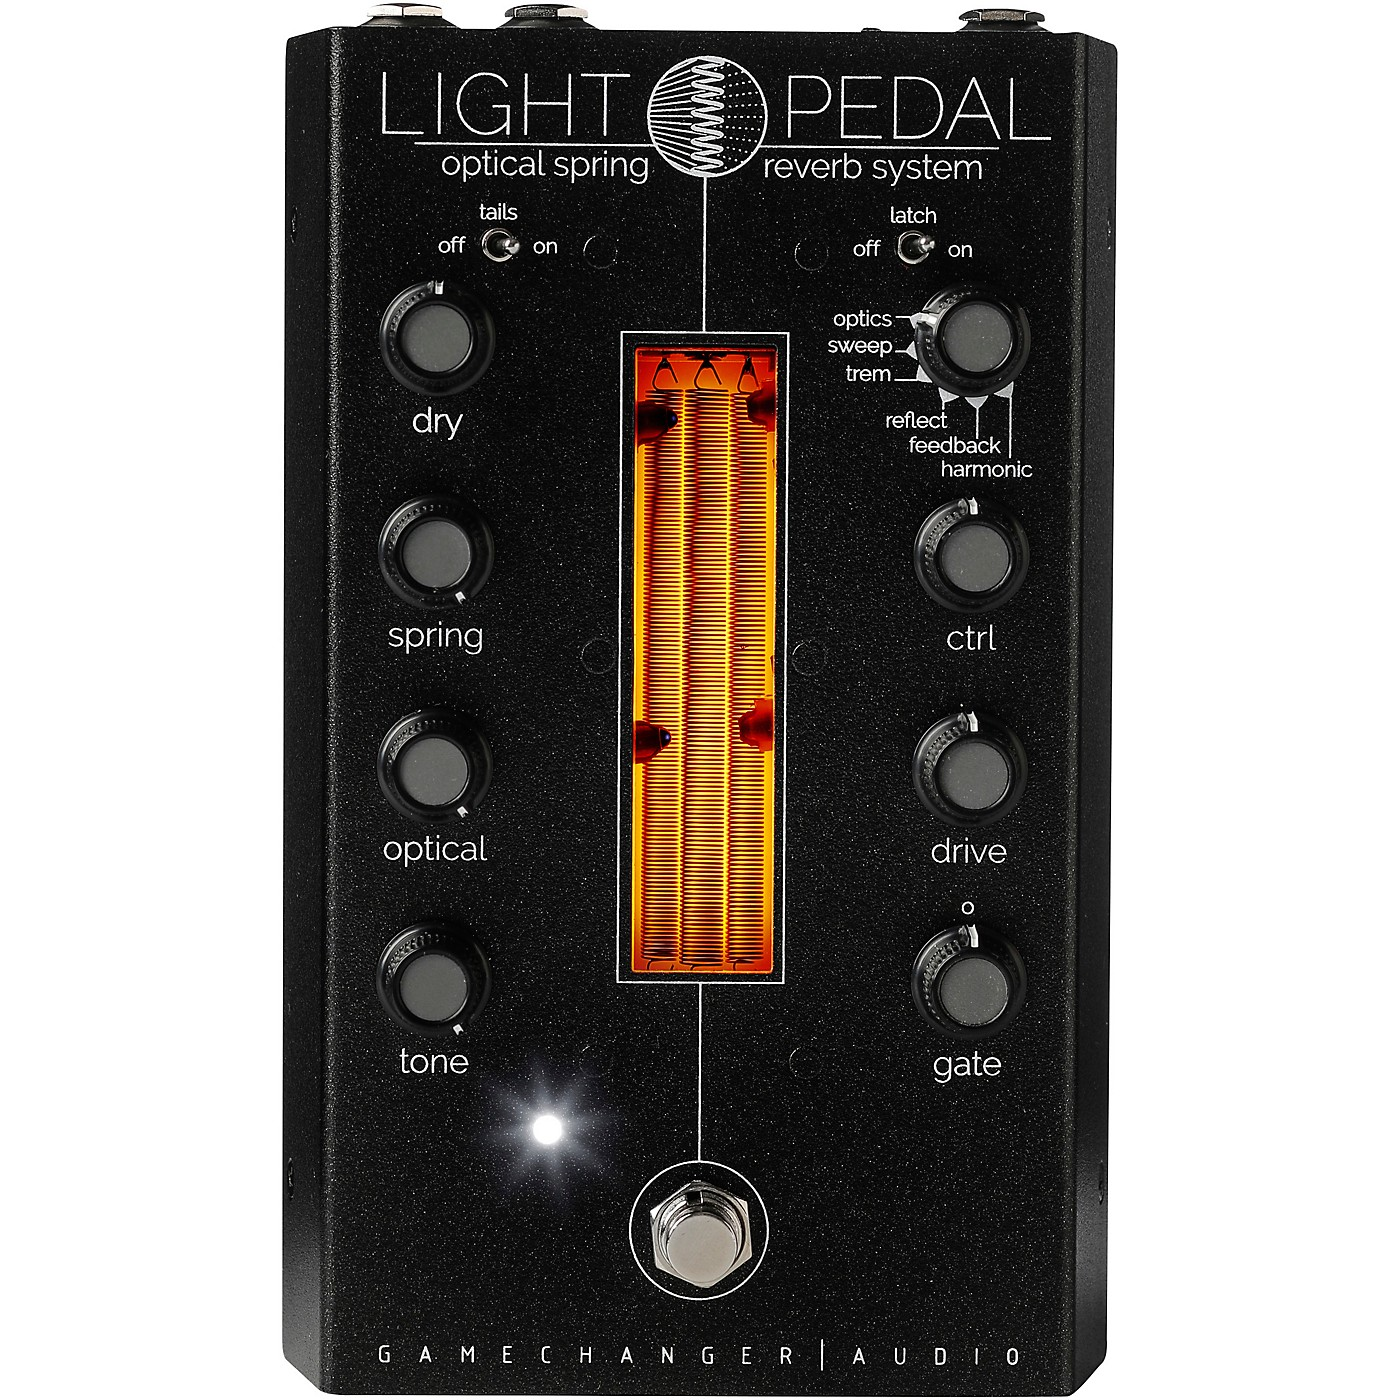 Gamechanger Audio LIGHT Analog Optical Spring Reverb Effects Pedal thumbnail